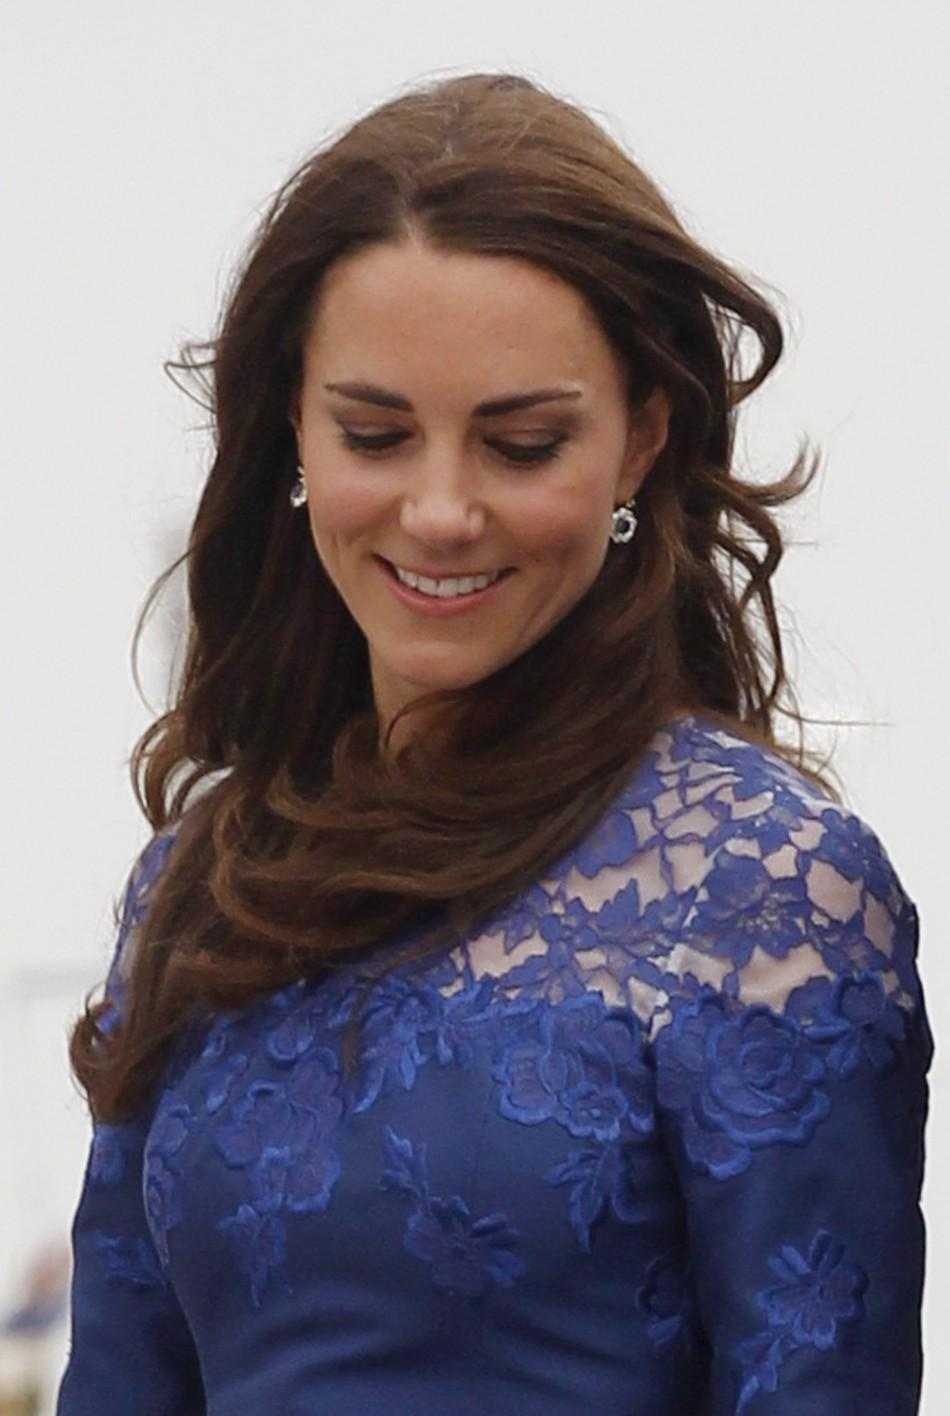 Kate Middleton, the Duchess of Cambridge